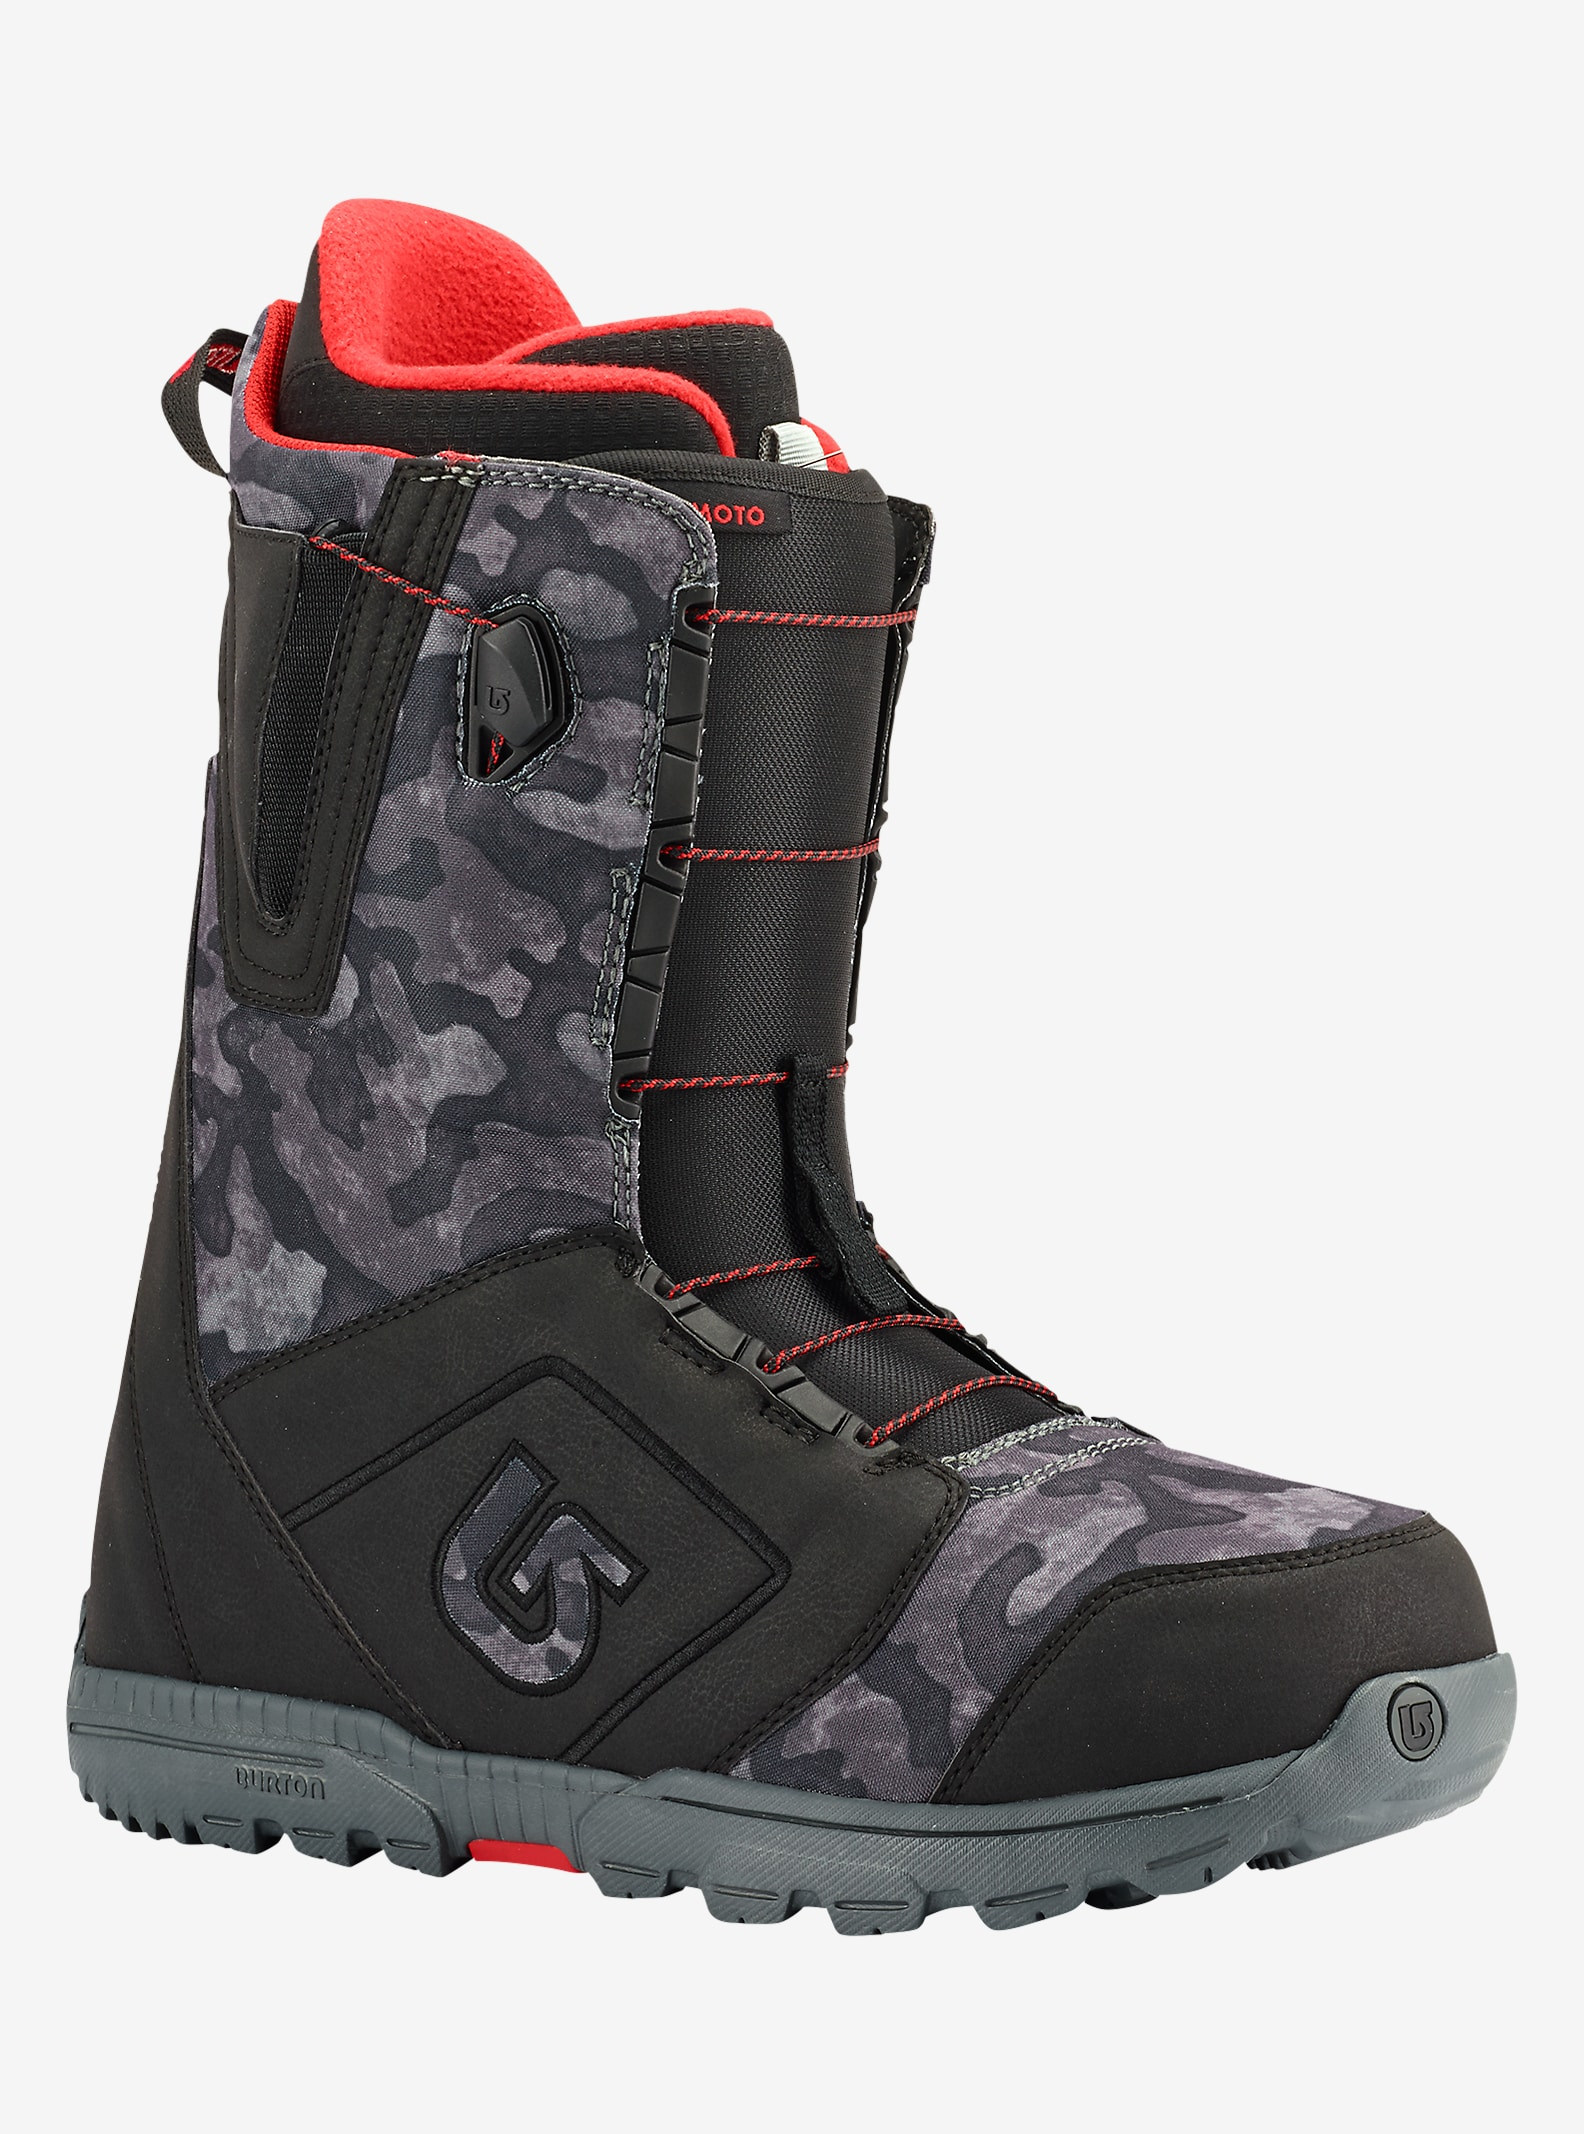 Burton Moto Snowboard Boot shown in Black / Camo